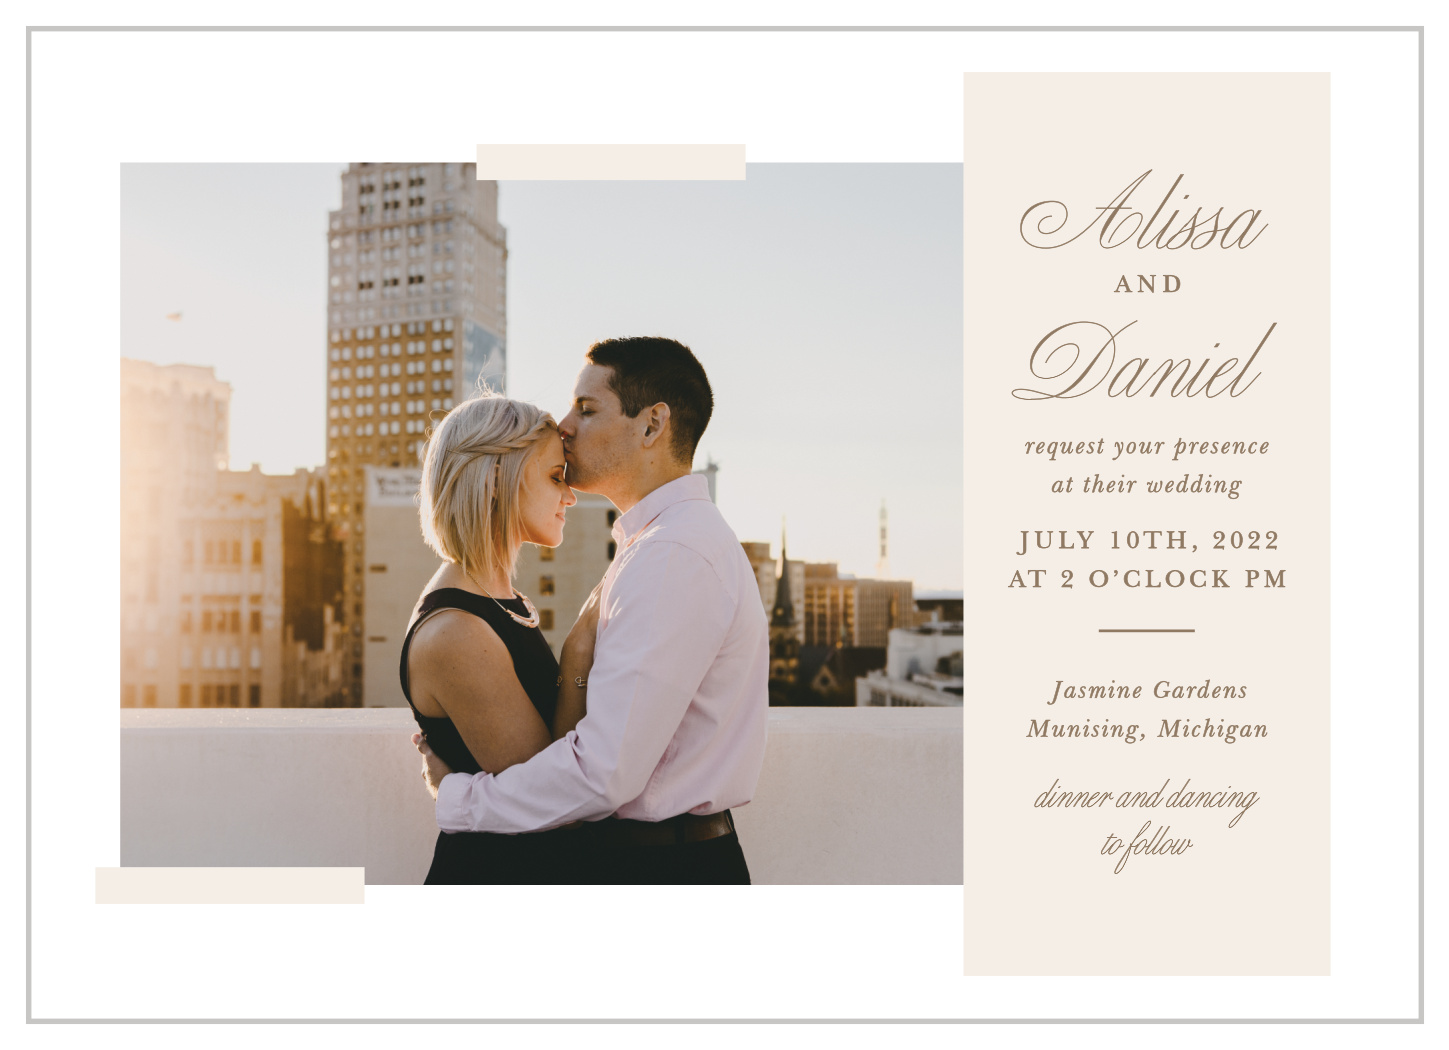 Modern Memories Wedding Invitations by Basic Invite